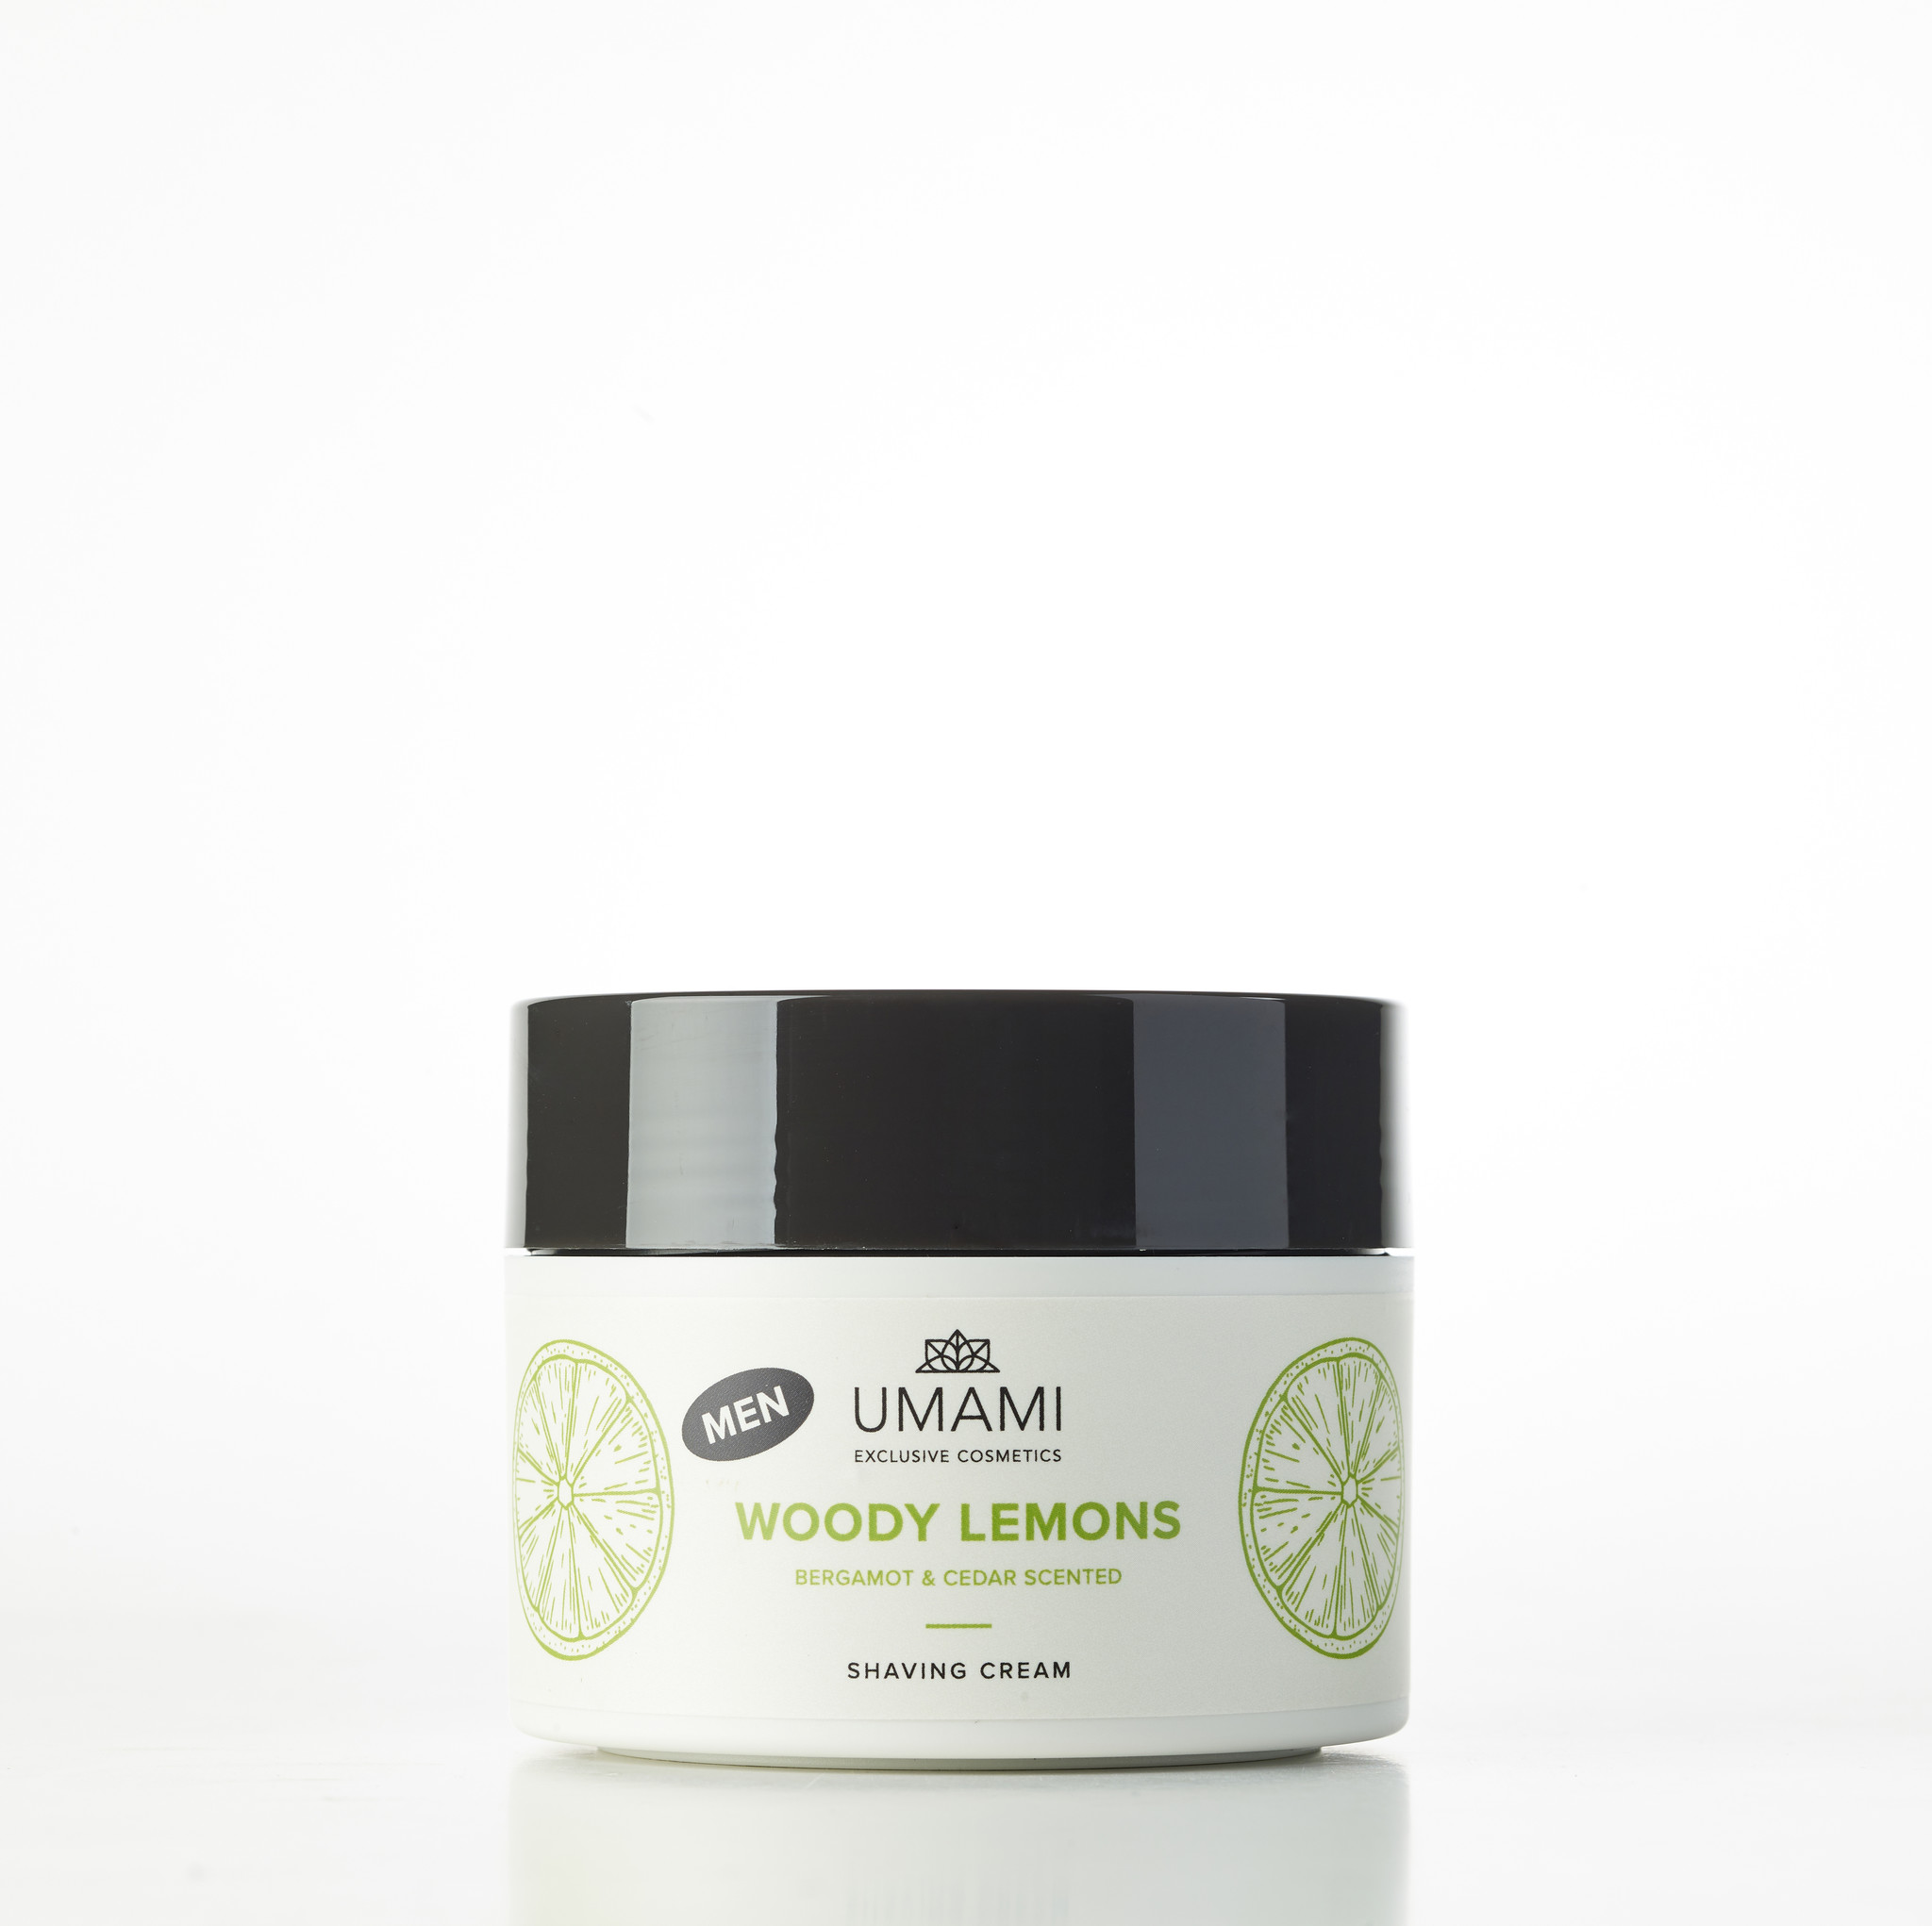 UMAMI Shaving Cream Woody Lemons 250ml